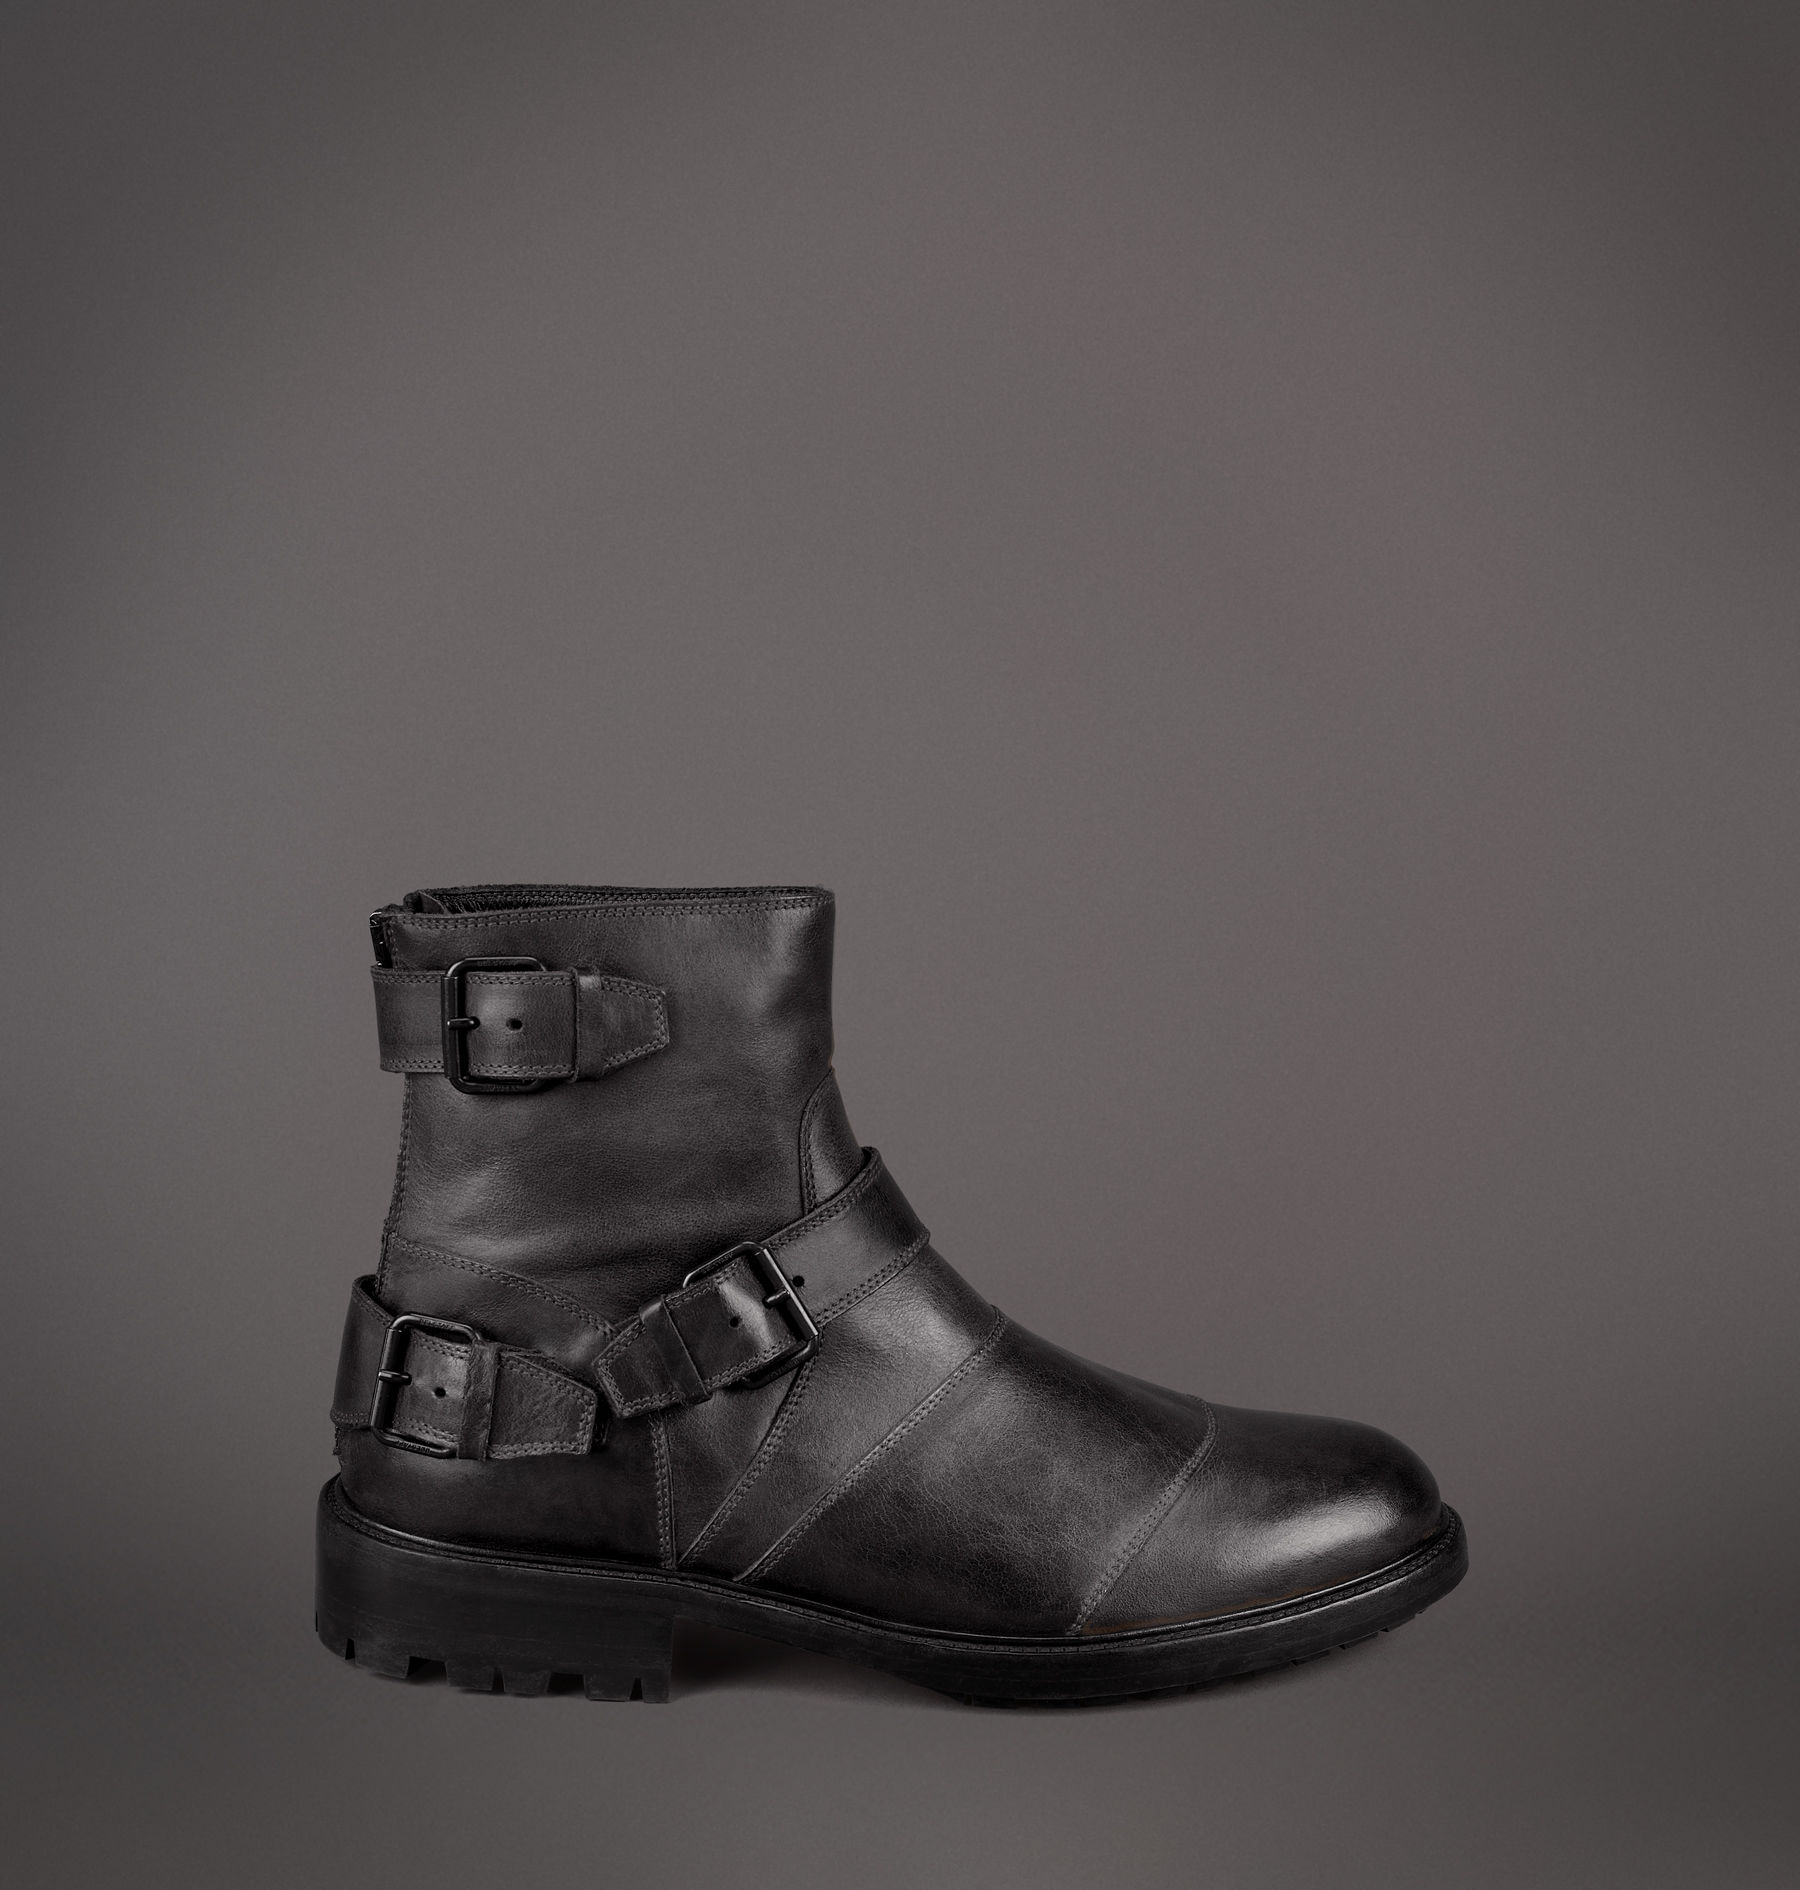 Clearance Big Discount Black Suede Trialmaster Boots Belstaff Visit New Cheap Price Outlet Best Store To Get Extremely Cheap Price Cheap Top Quality c6OoatR